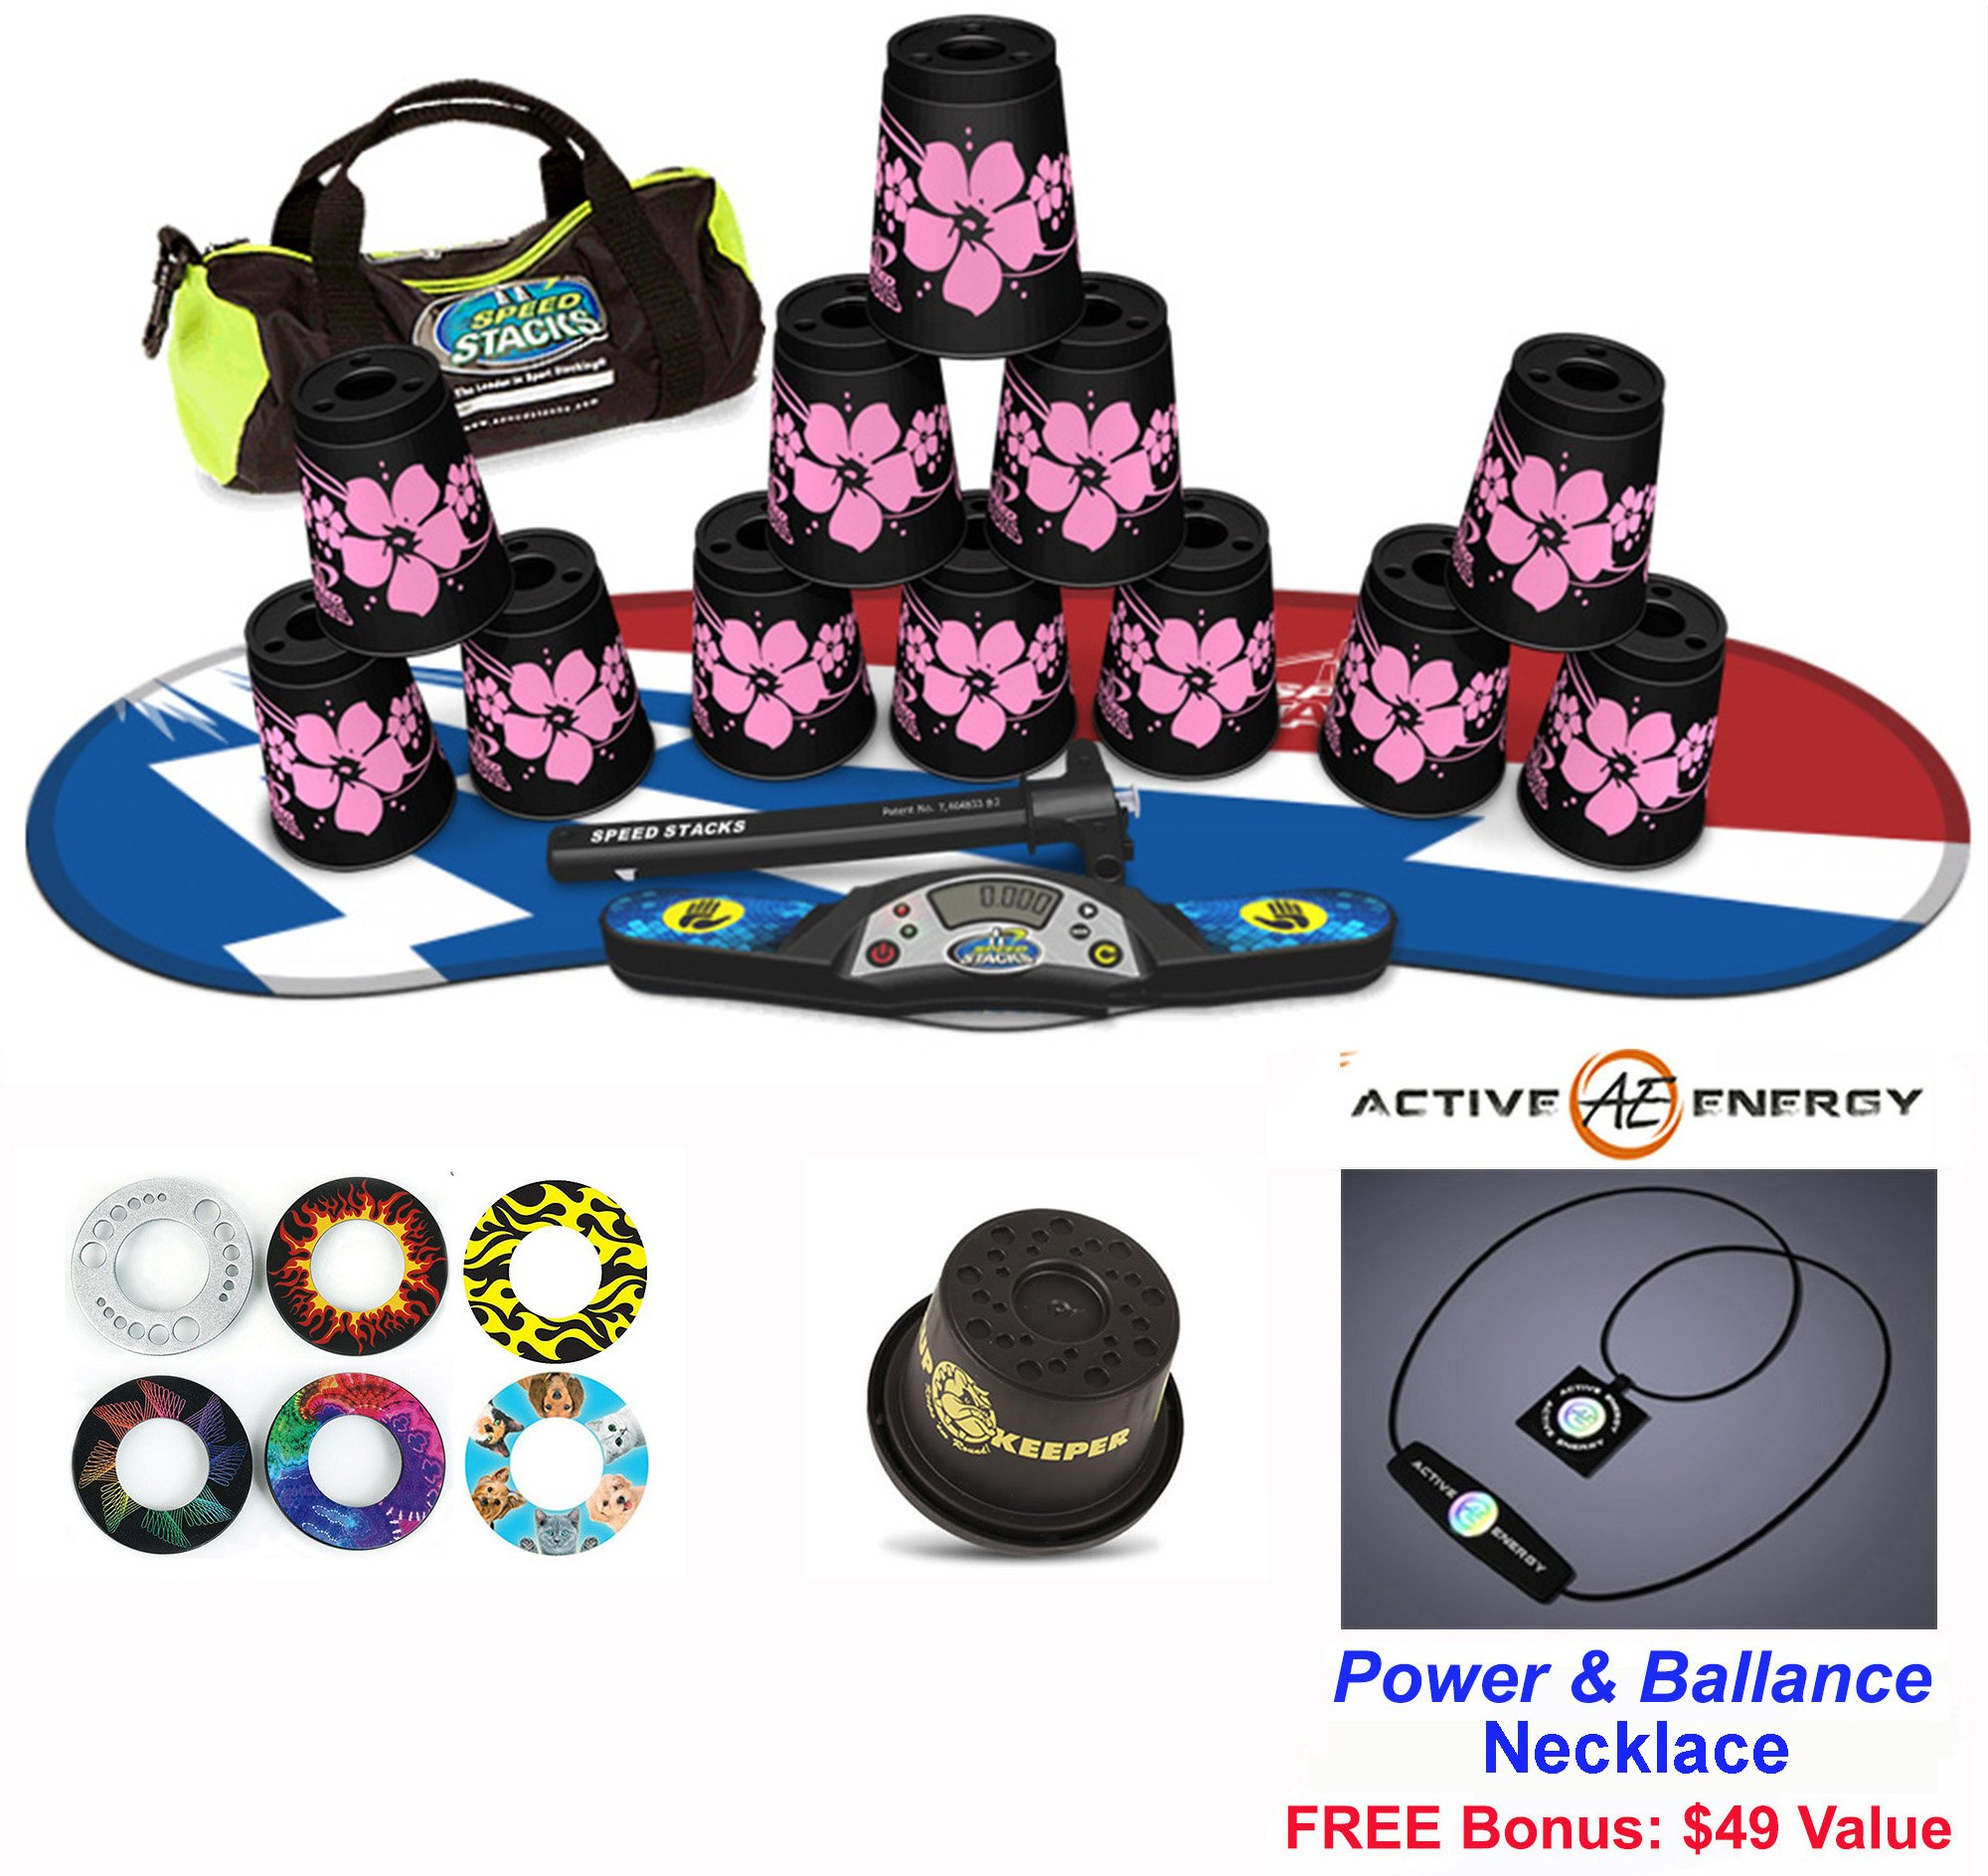 Speed Stacks Combo Set 'The Works'': 12 PINK HAWAIIAN 4'' Cups, Atomic Punch Gen 3 Mat, G4 Pro Timer, Cup Keeper, Stem, Gear Bag + Active Energy Necklace by Speed Stacks